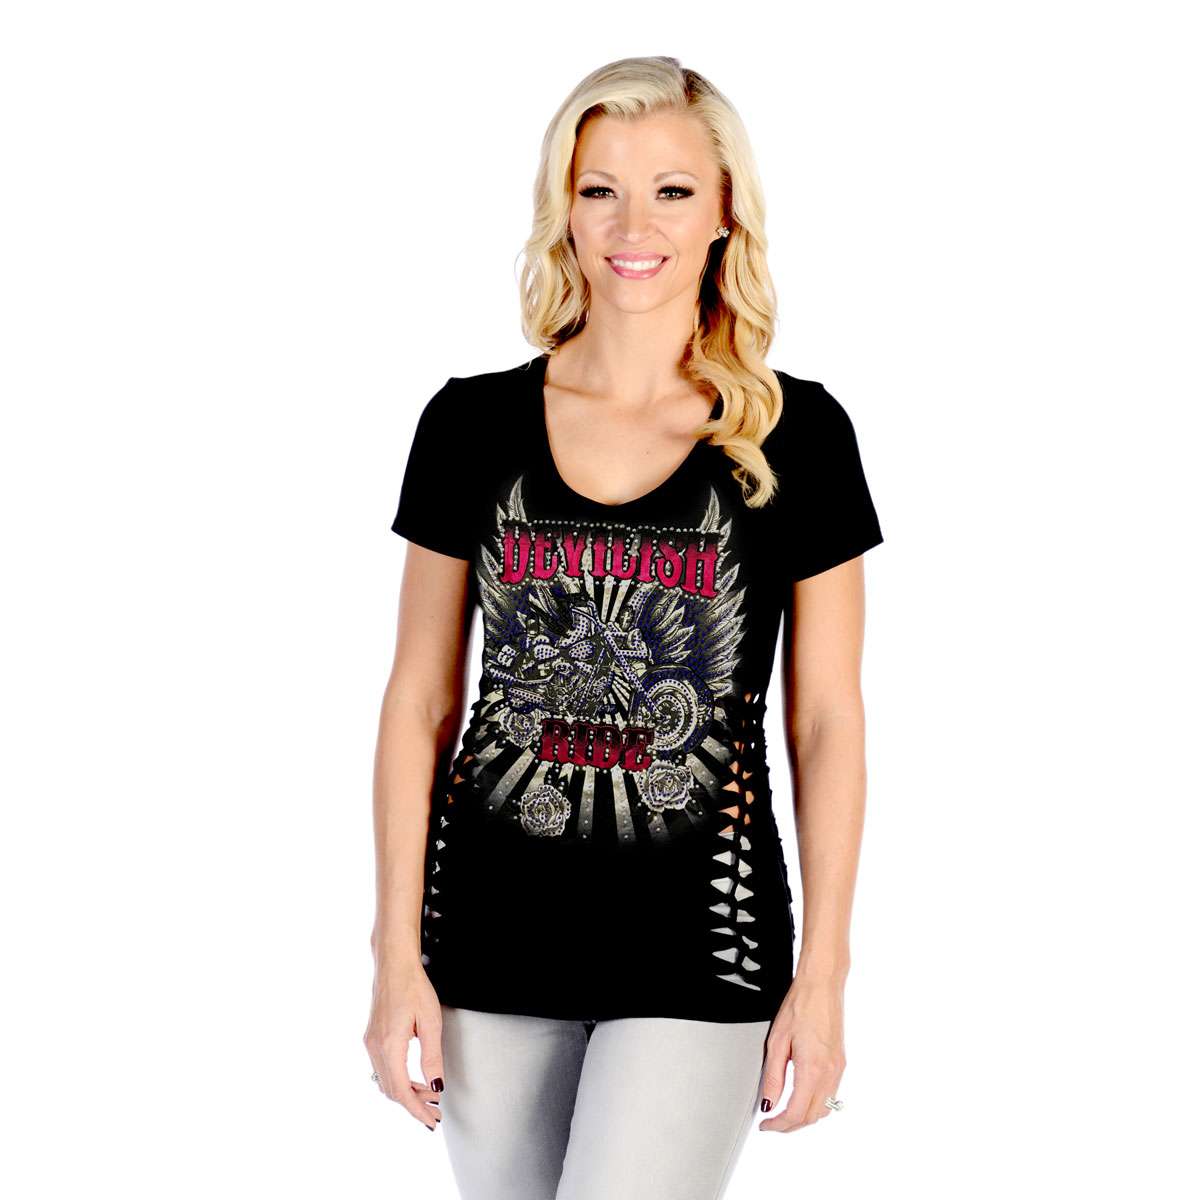 Liberty Wear Women's Devilish Ride Black Top